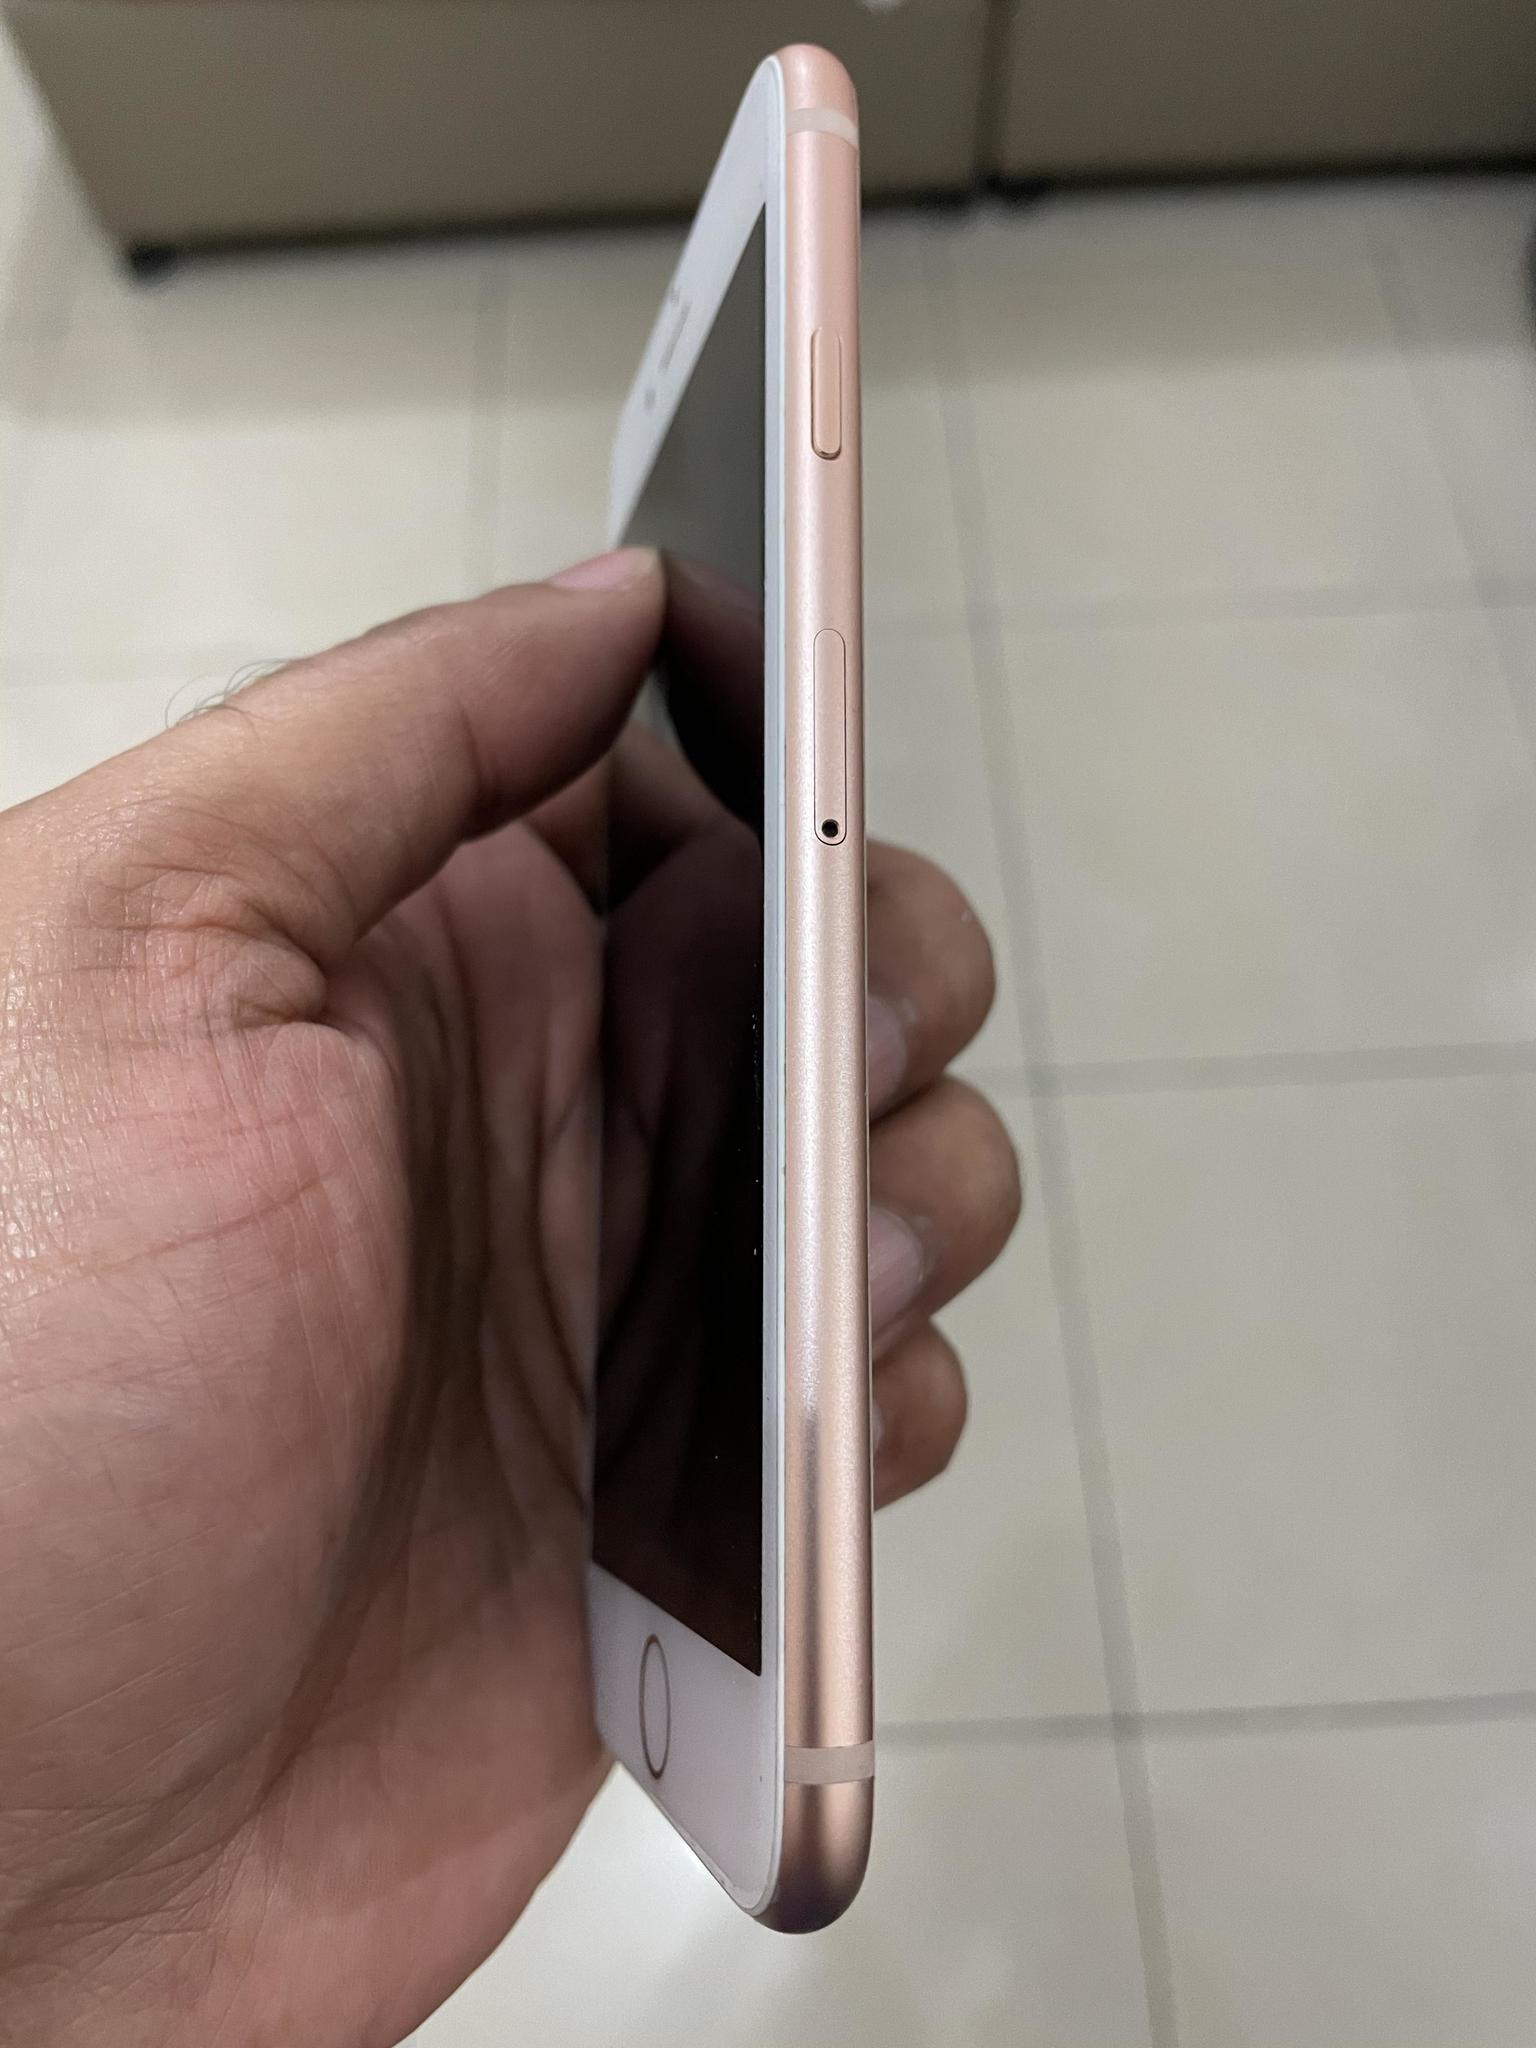 iPhone 8. Excellent condition. Rose pink colour